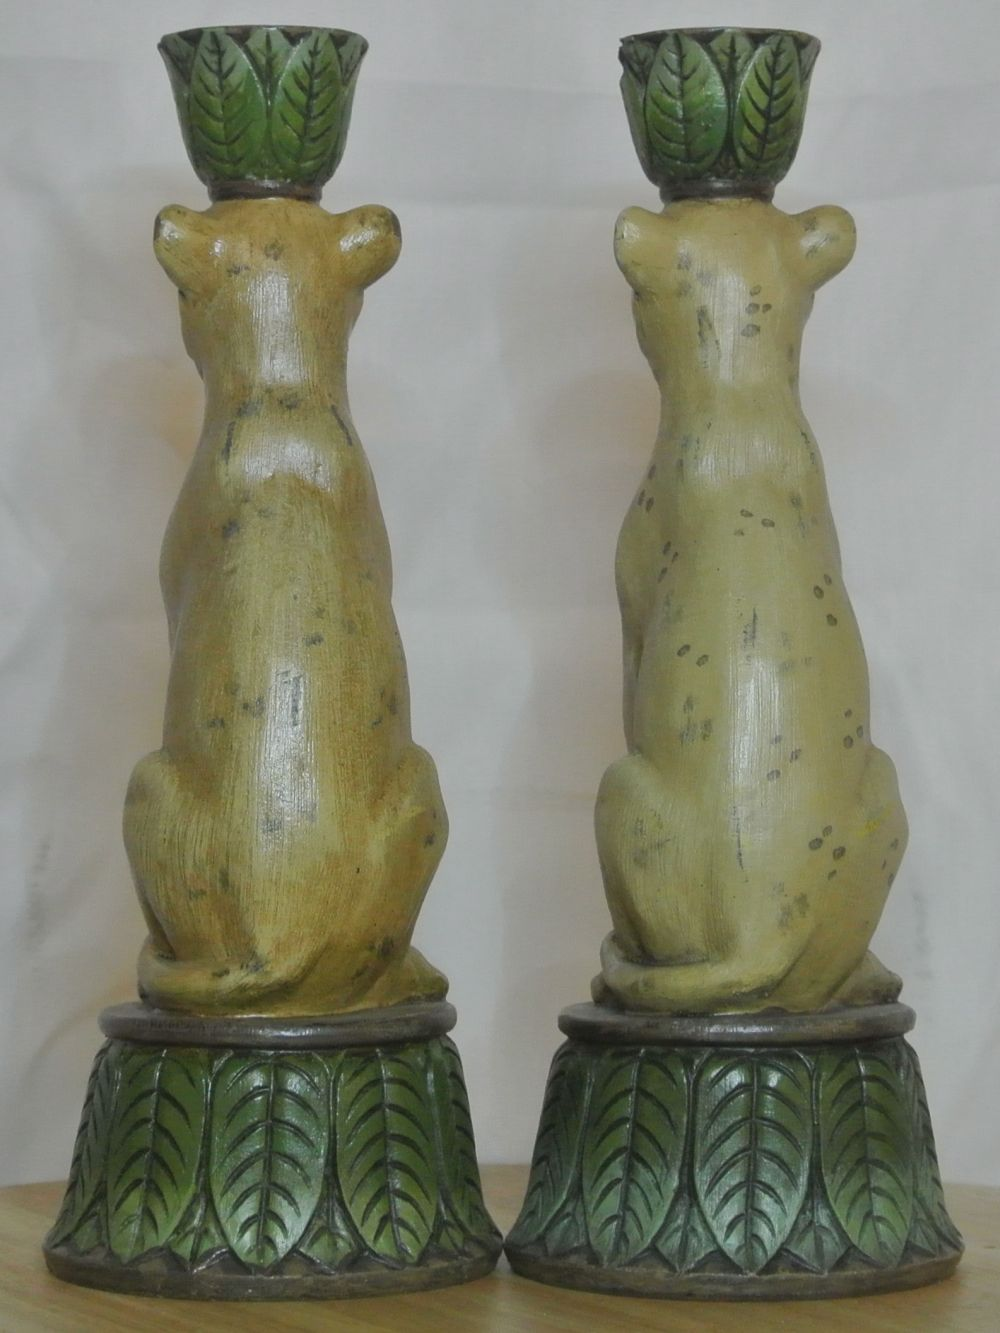 Lot 31: An unusual pair of antique style cheetah candlesticks